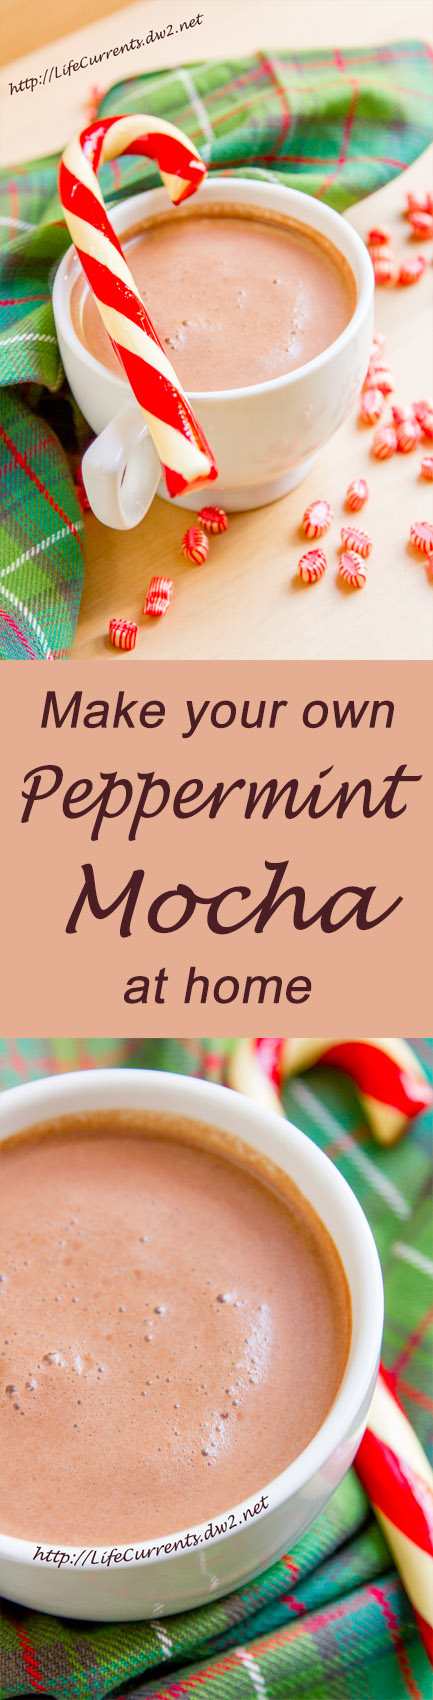 Peppermint Mocha long pin with two images and a title